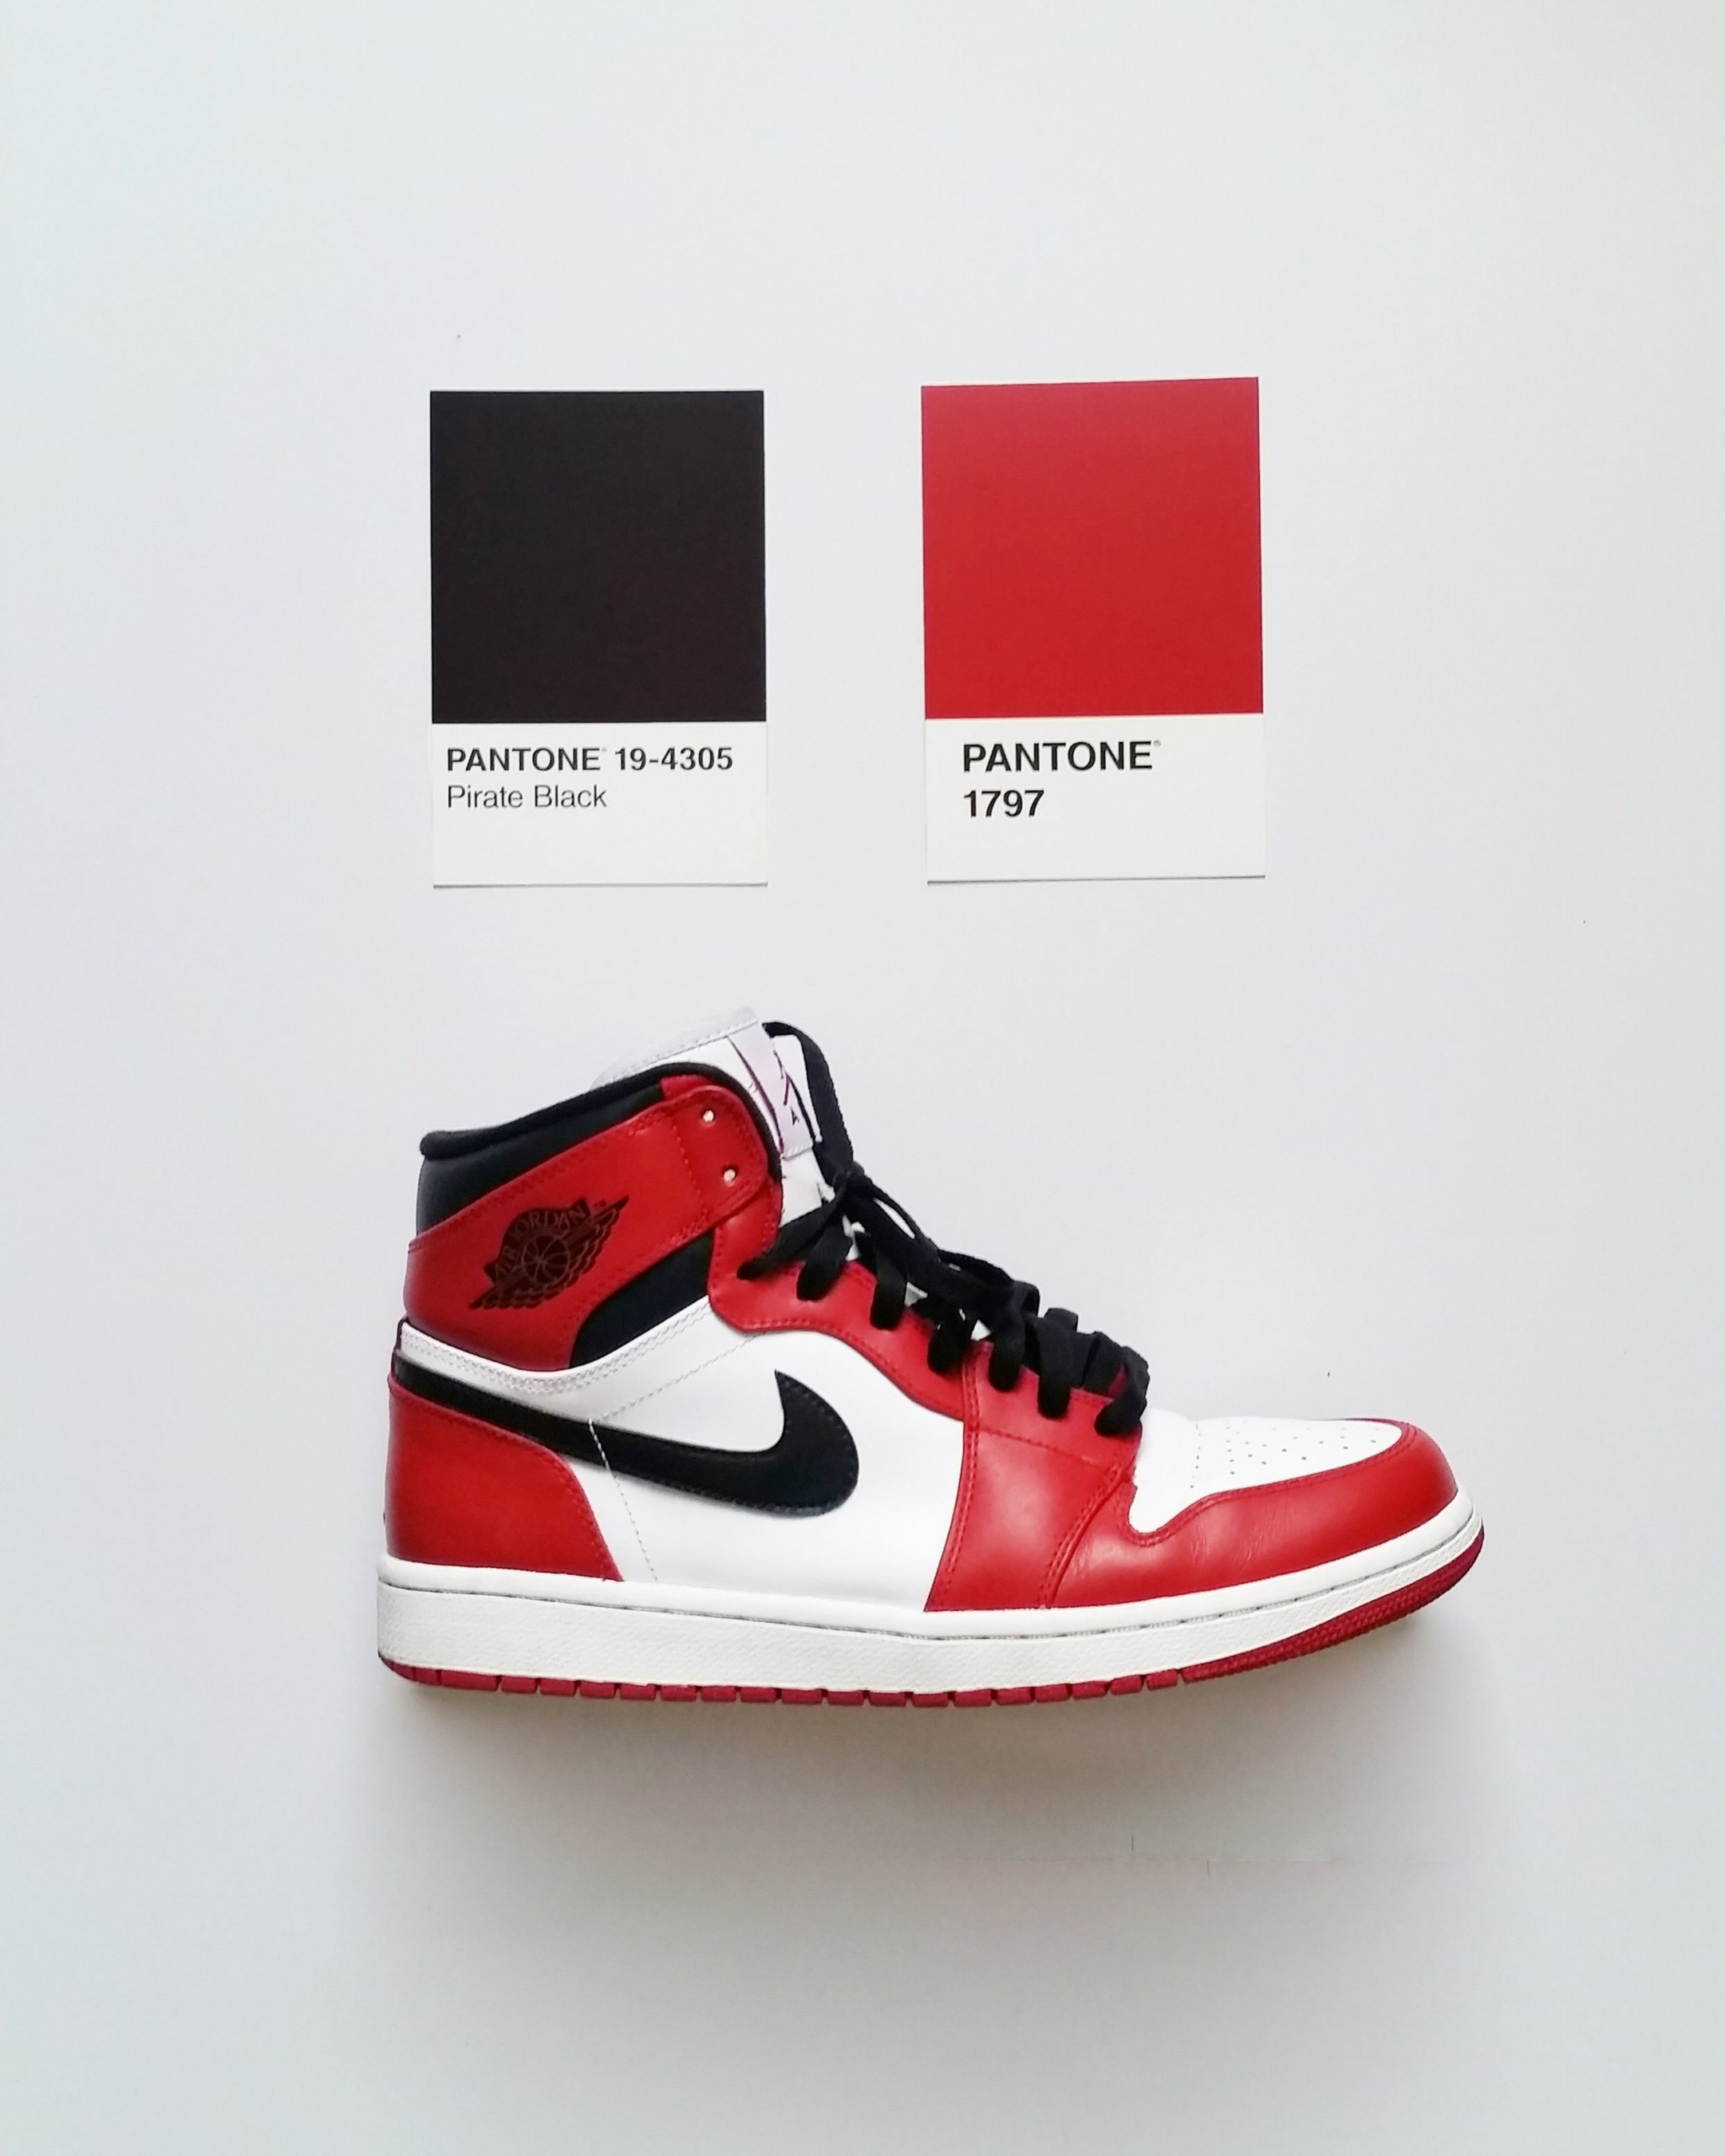 Кроссовки Jordan 1 Retro High Bred Toe — цвета pantone